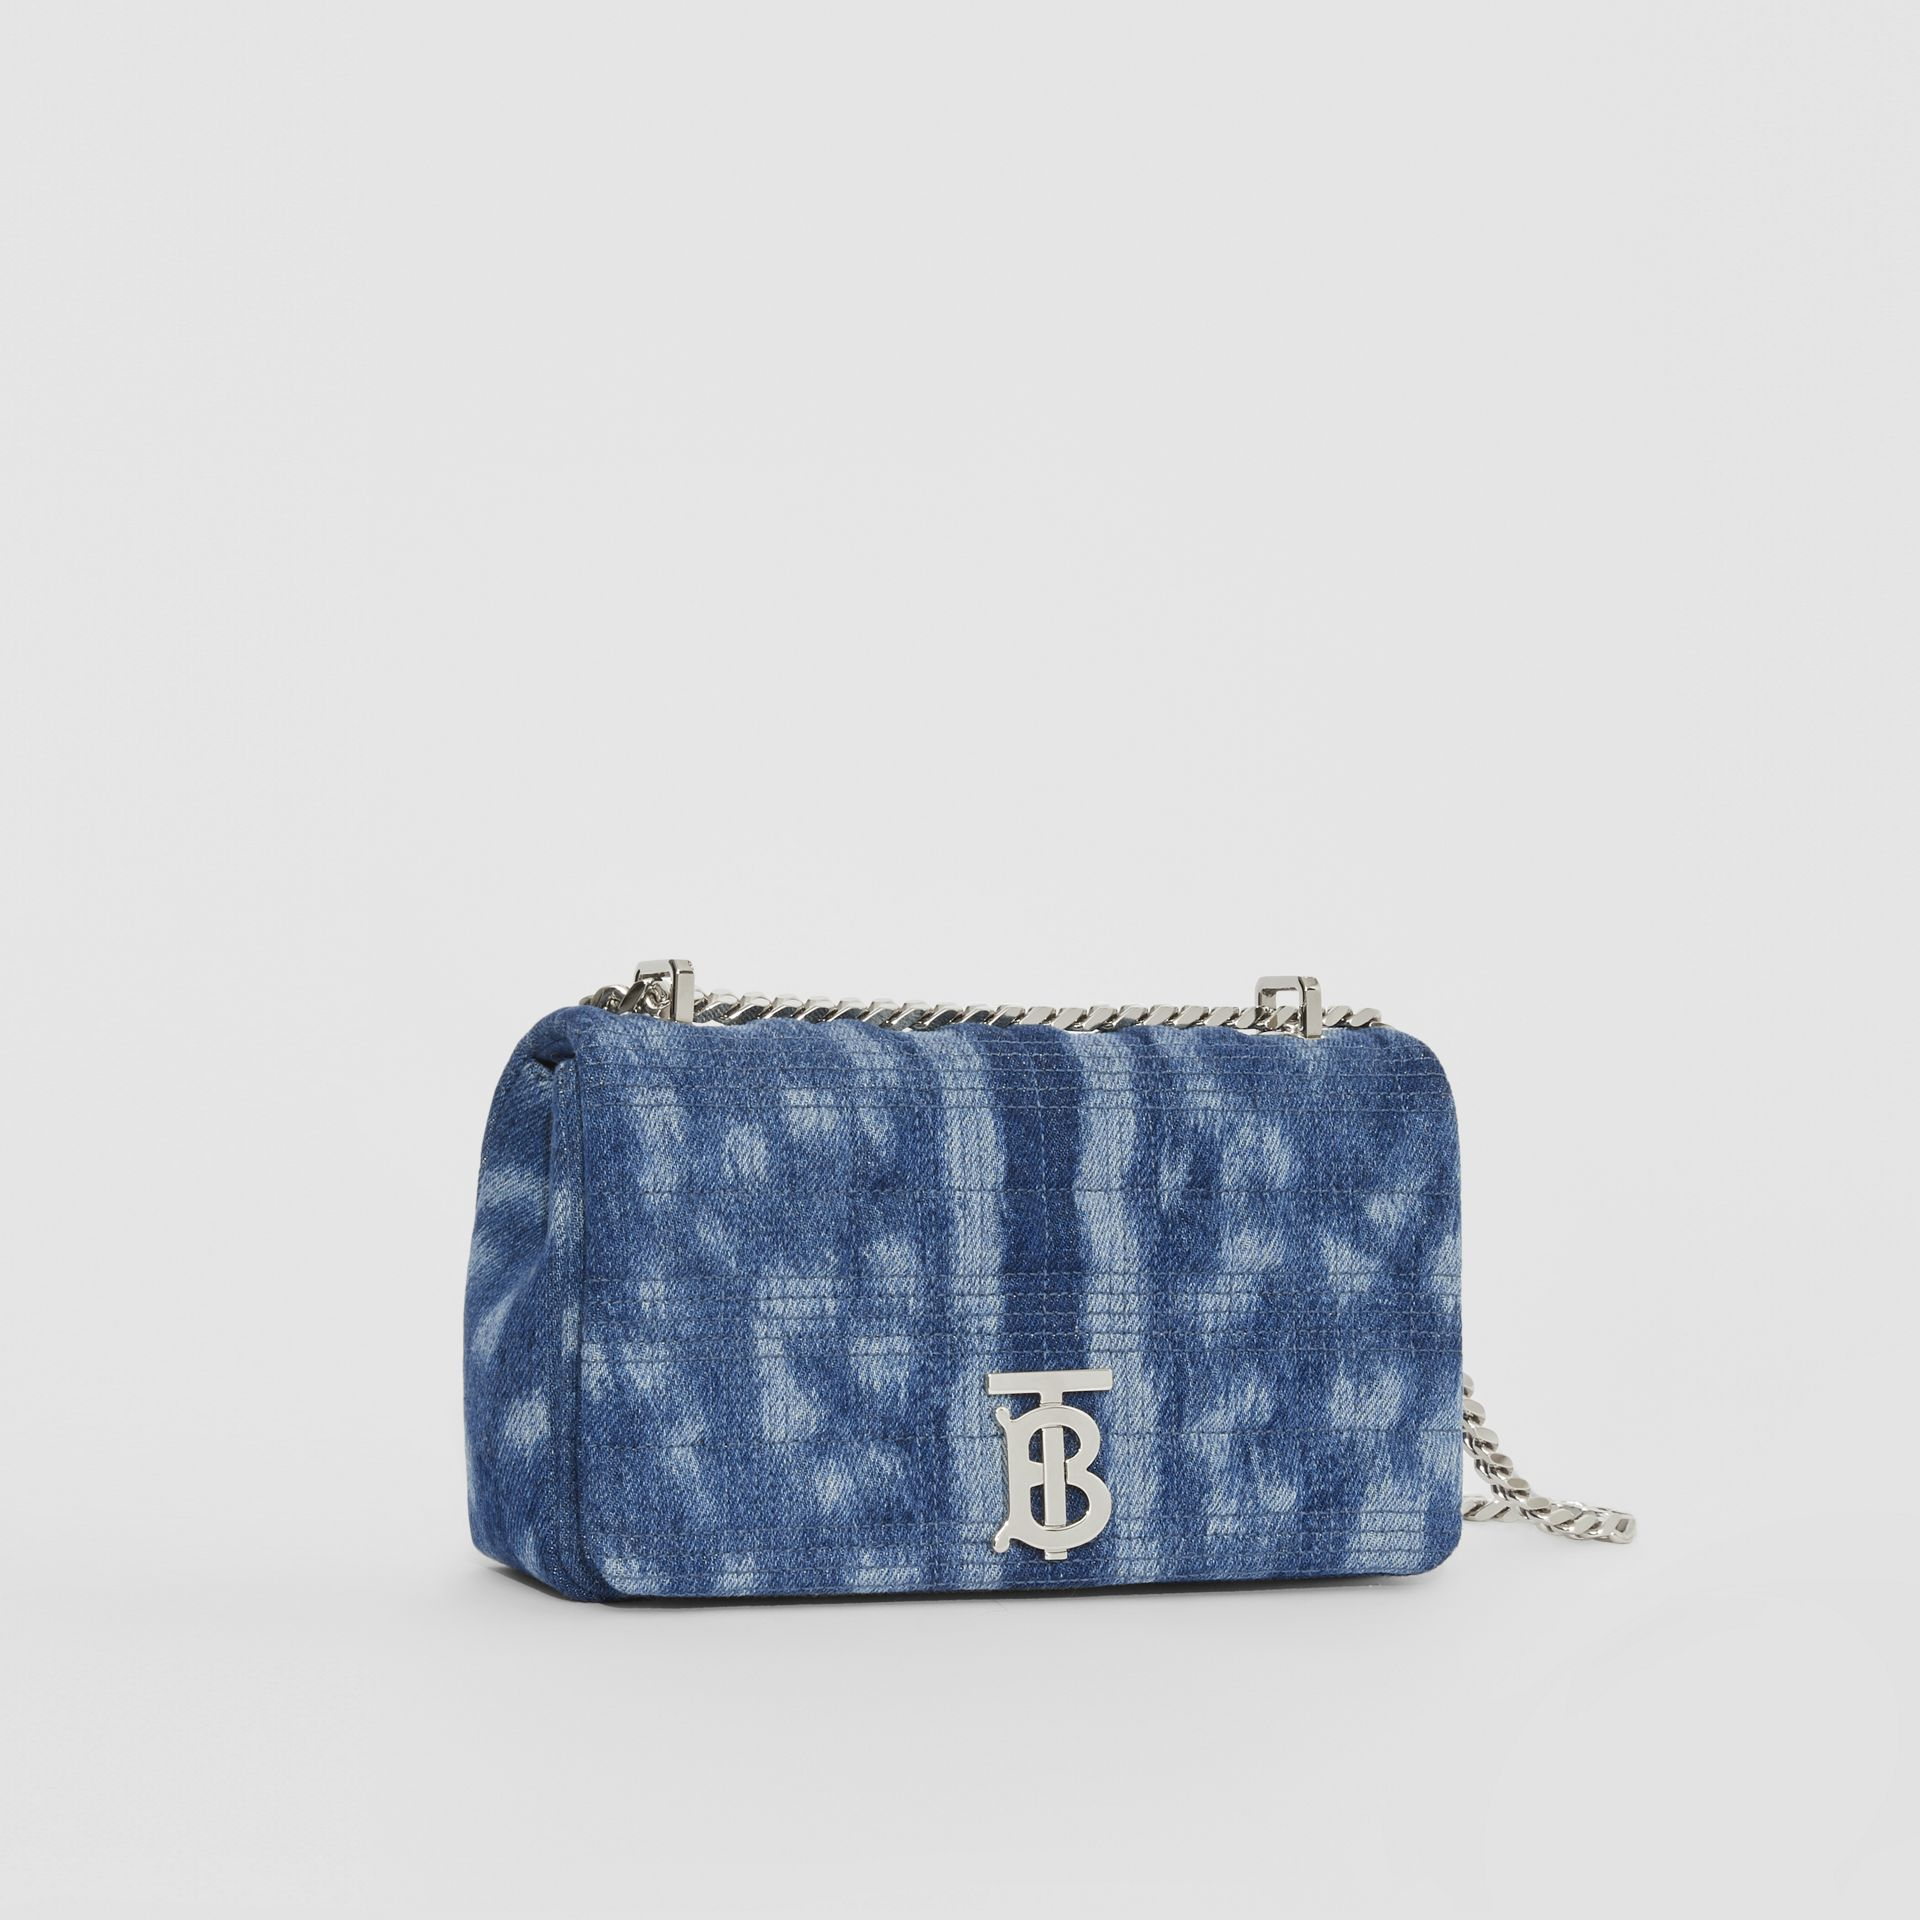 Small Quilted Denim Lola Bag in Blue - Women | Burberry - gallery image 6